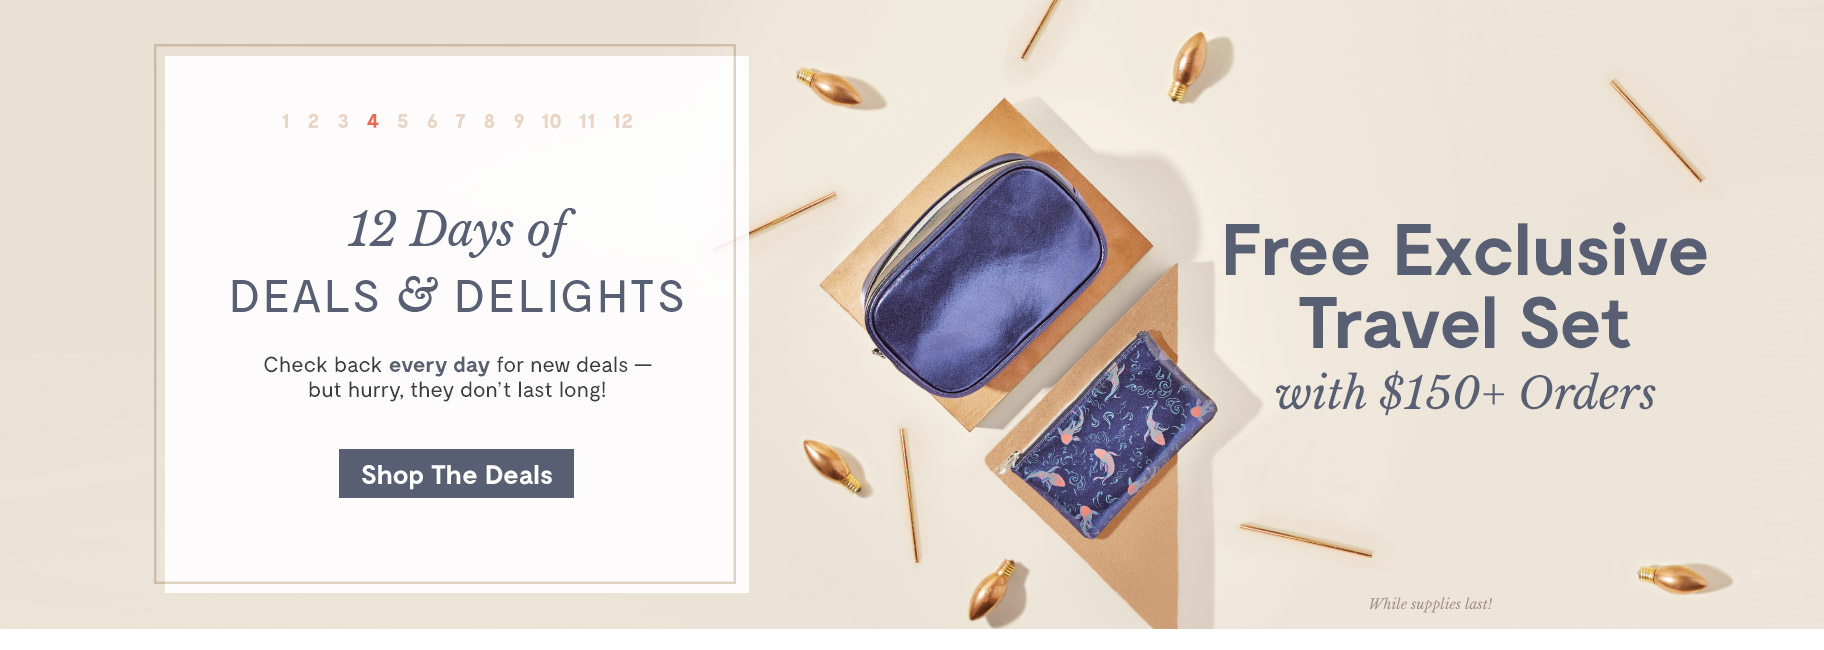 12 Days of Deals & Delights. Day 4 Free Exclusive Travel Set with $150+ Orders. Shop the Deals.